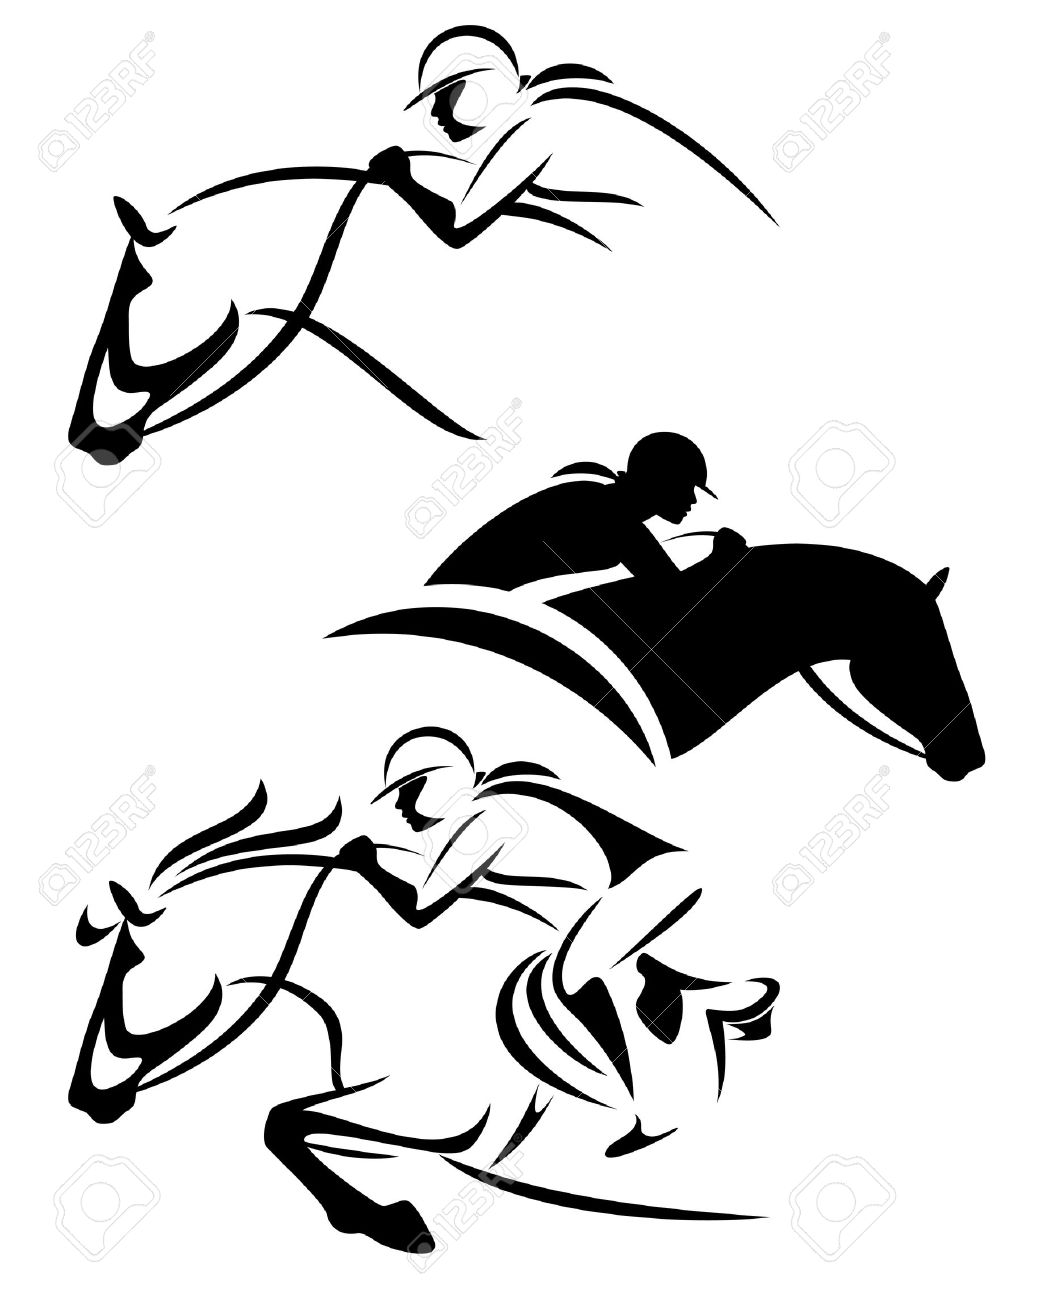 female rider - jumping horse outline and silhouette black and white vector set - 47112477